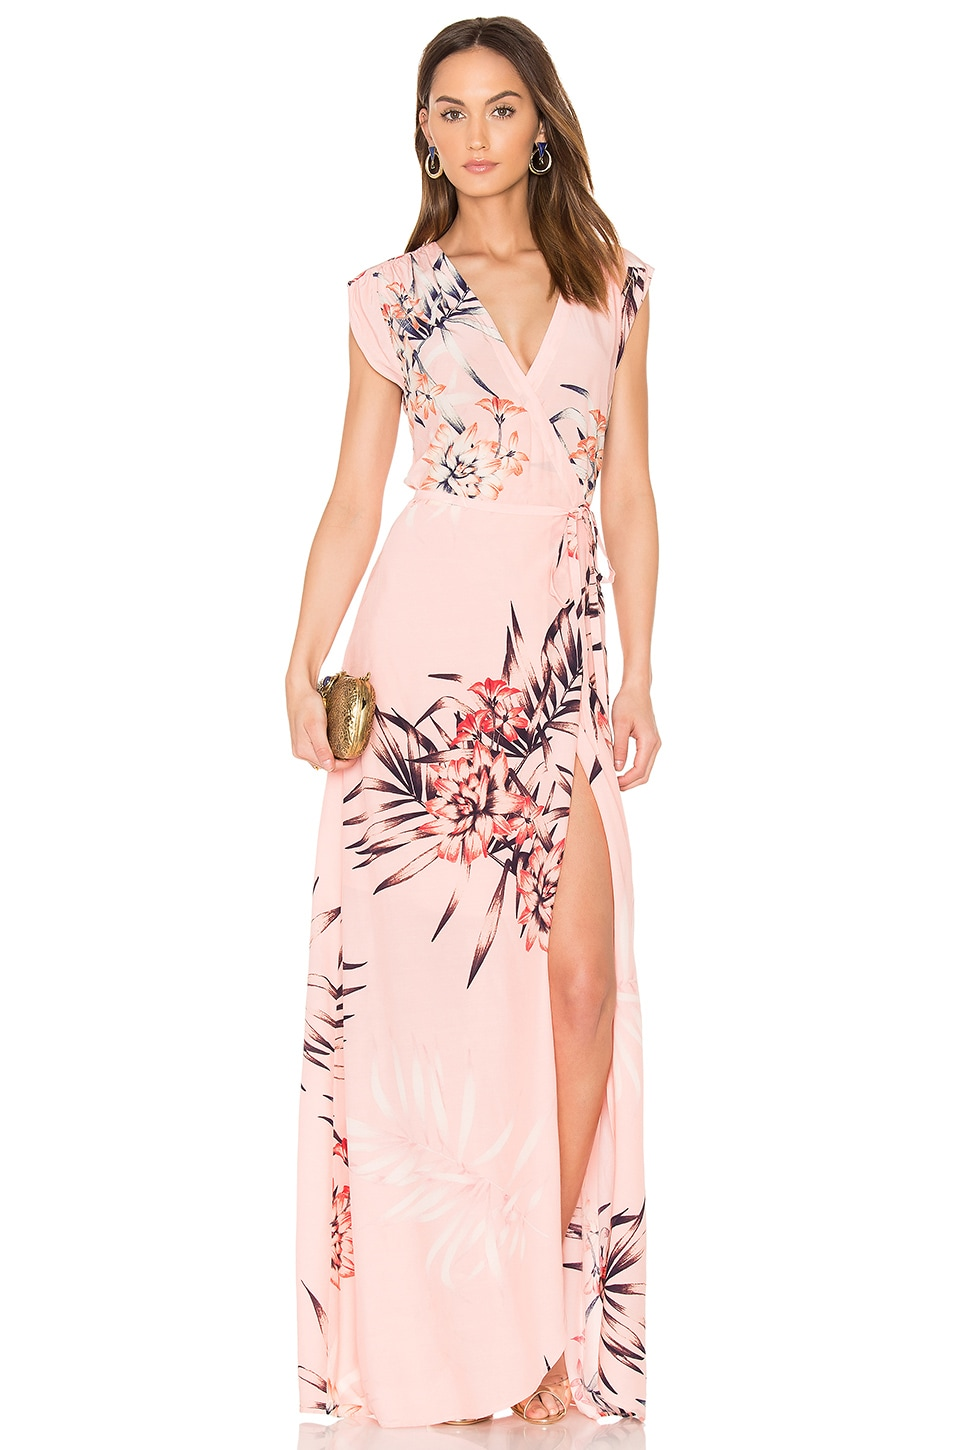 Yumi Kim Swept Away Maxi Dress in Tropical Tonic